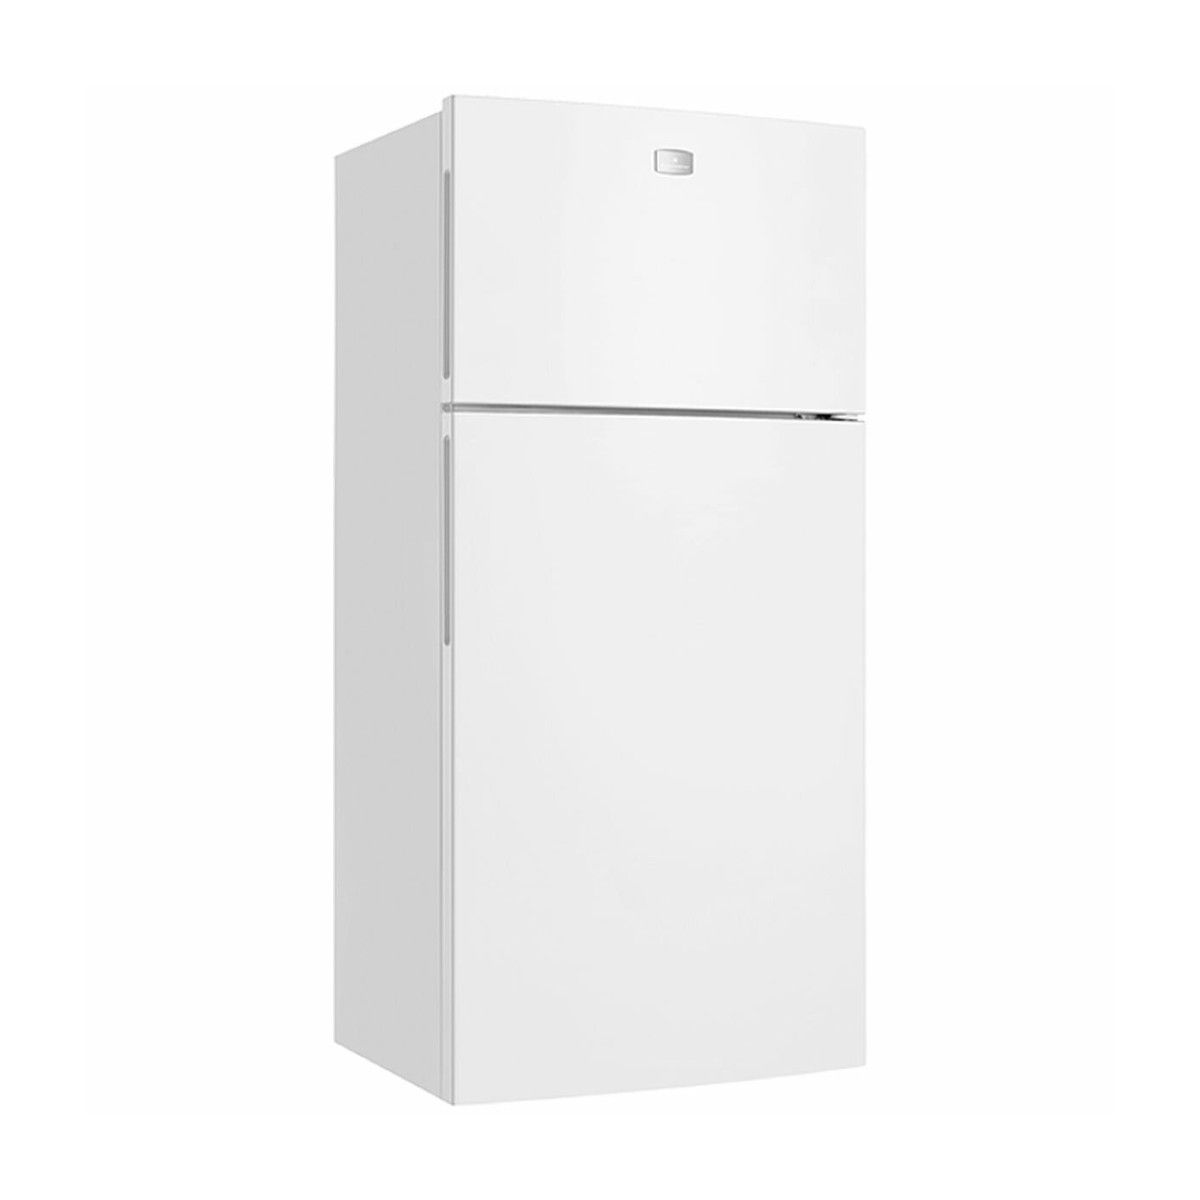 Large Fridge up to 425Lt